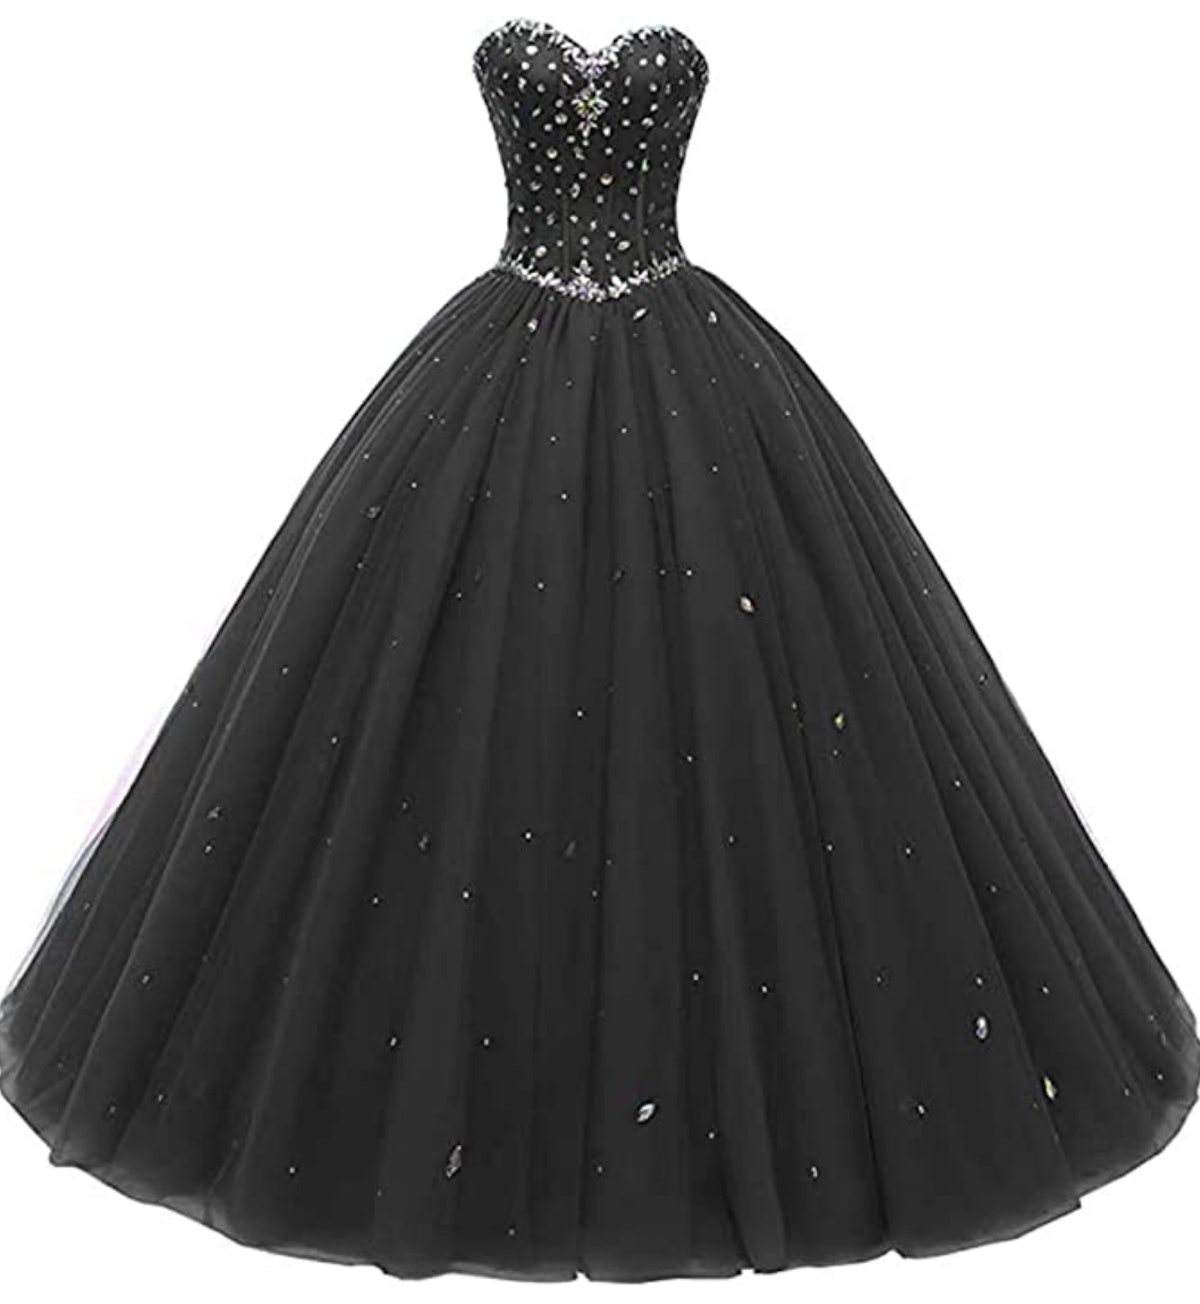 Likedpage Tulle Ball Gown